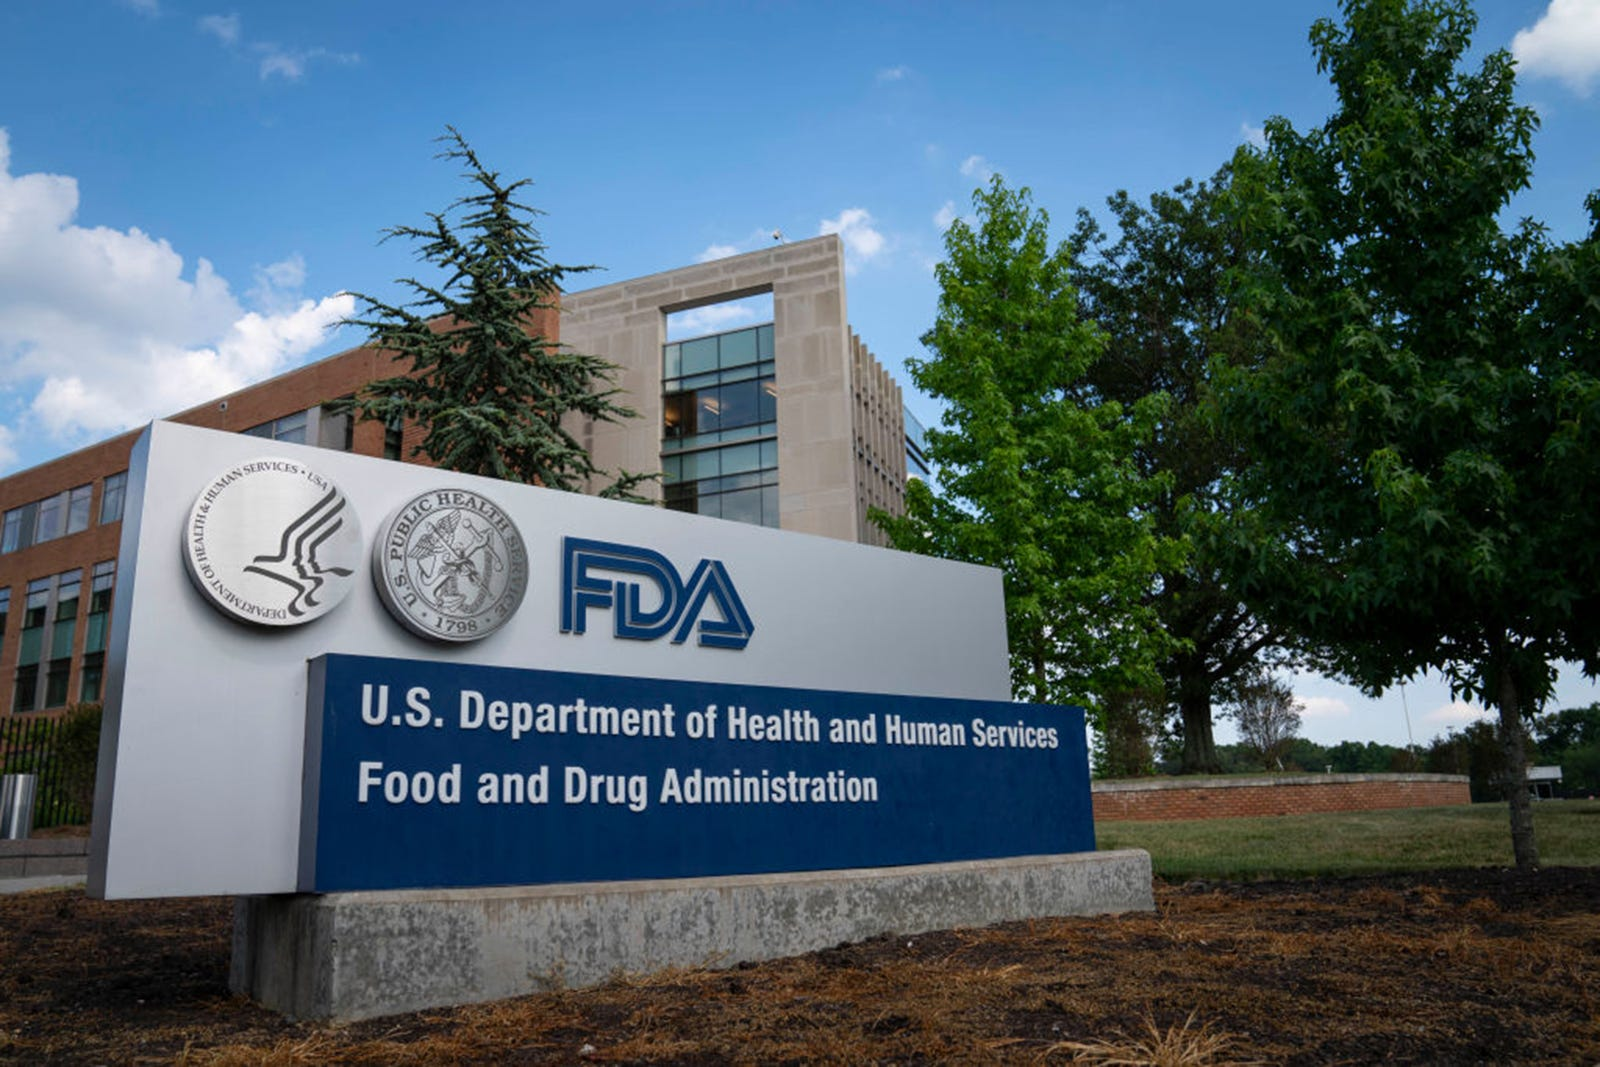 FDA weighs approval of a lucrative Alzheimer's drug but benefits are iffy 2